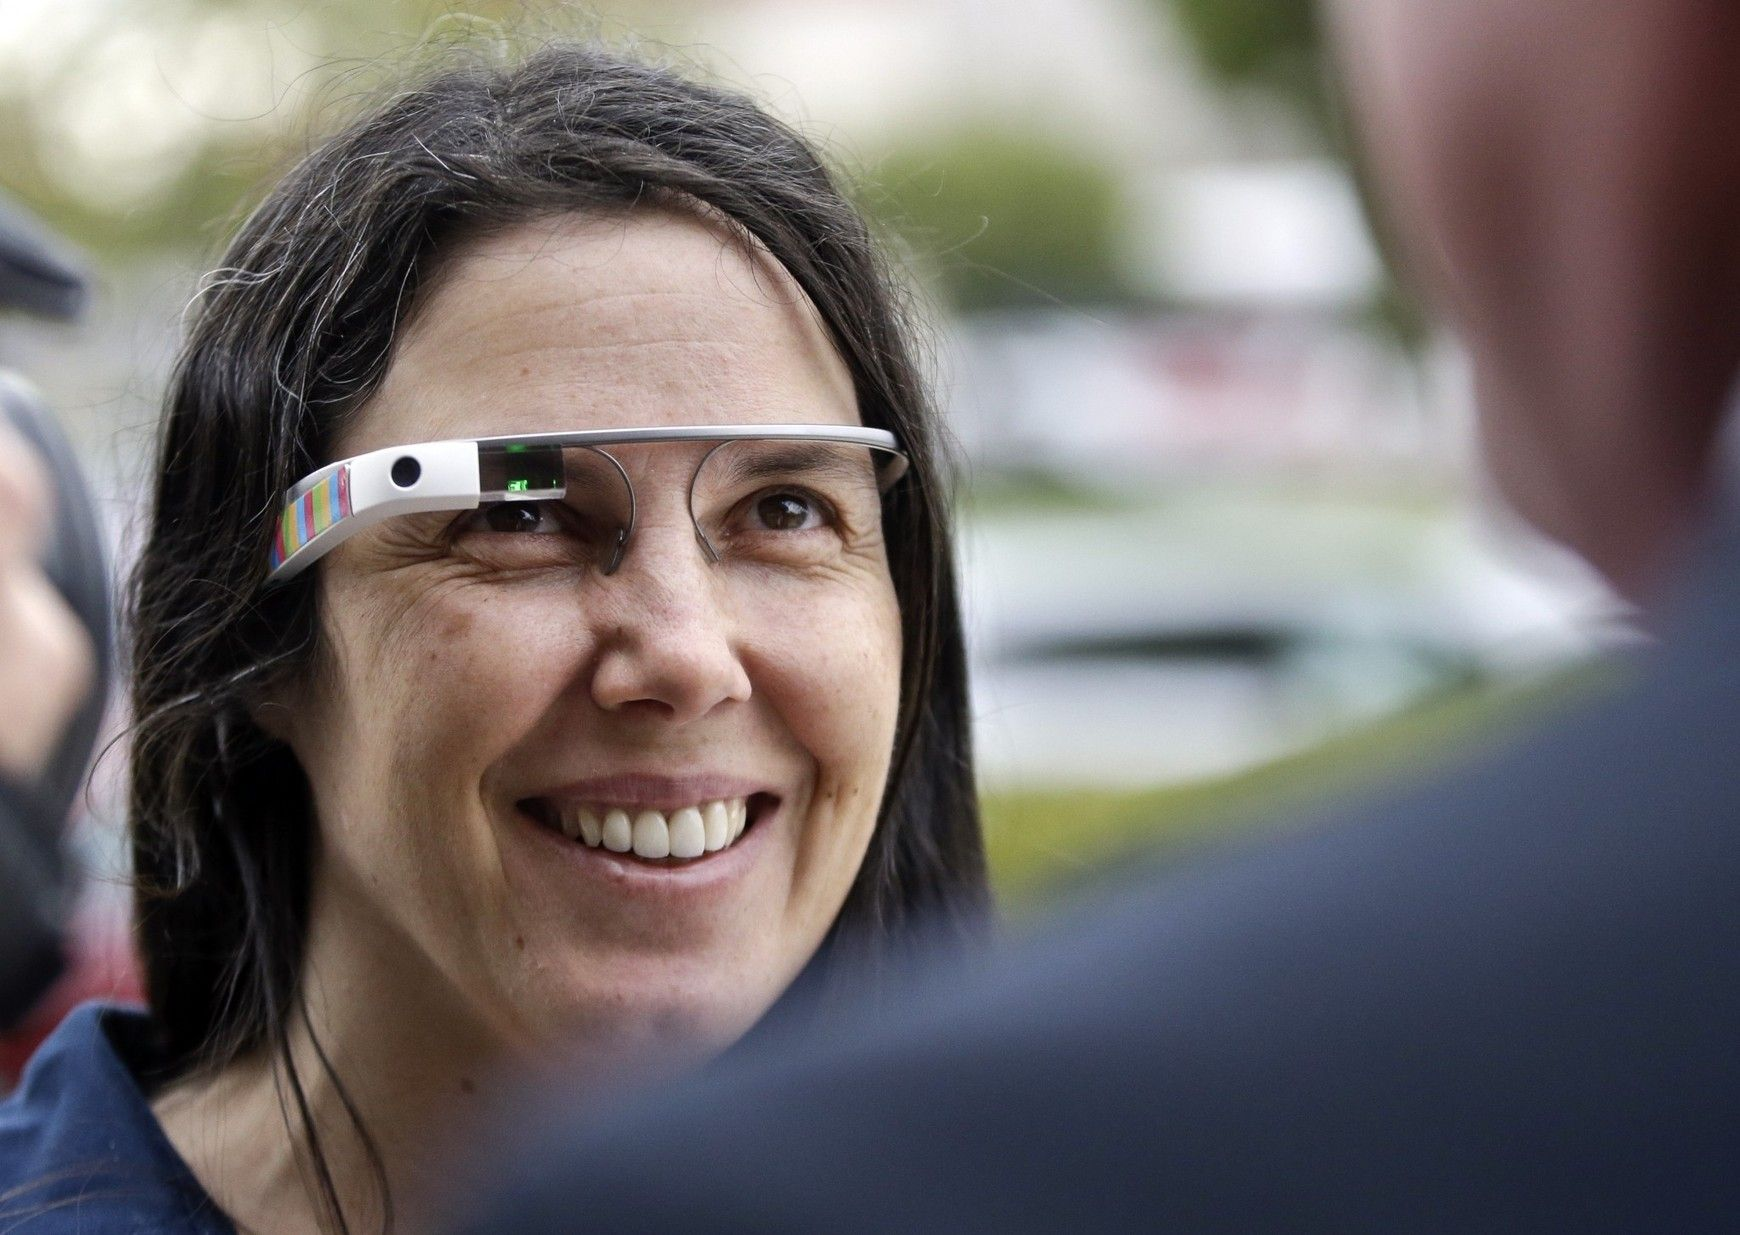 California Woman Cleared In Google Glass Driving Case California Car Accident And Injury Attorney News Google Glass Women Fight Women